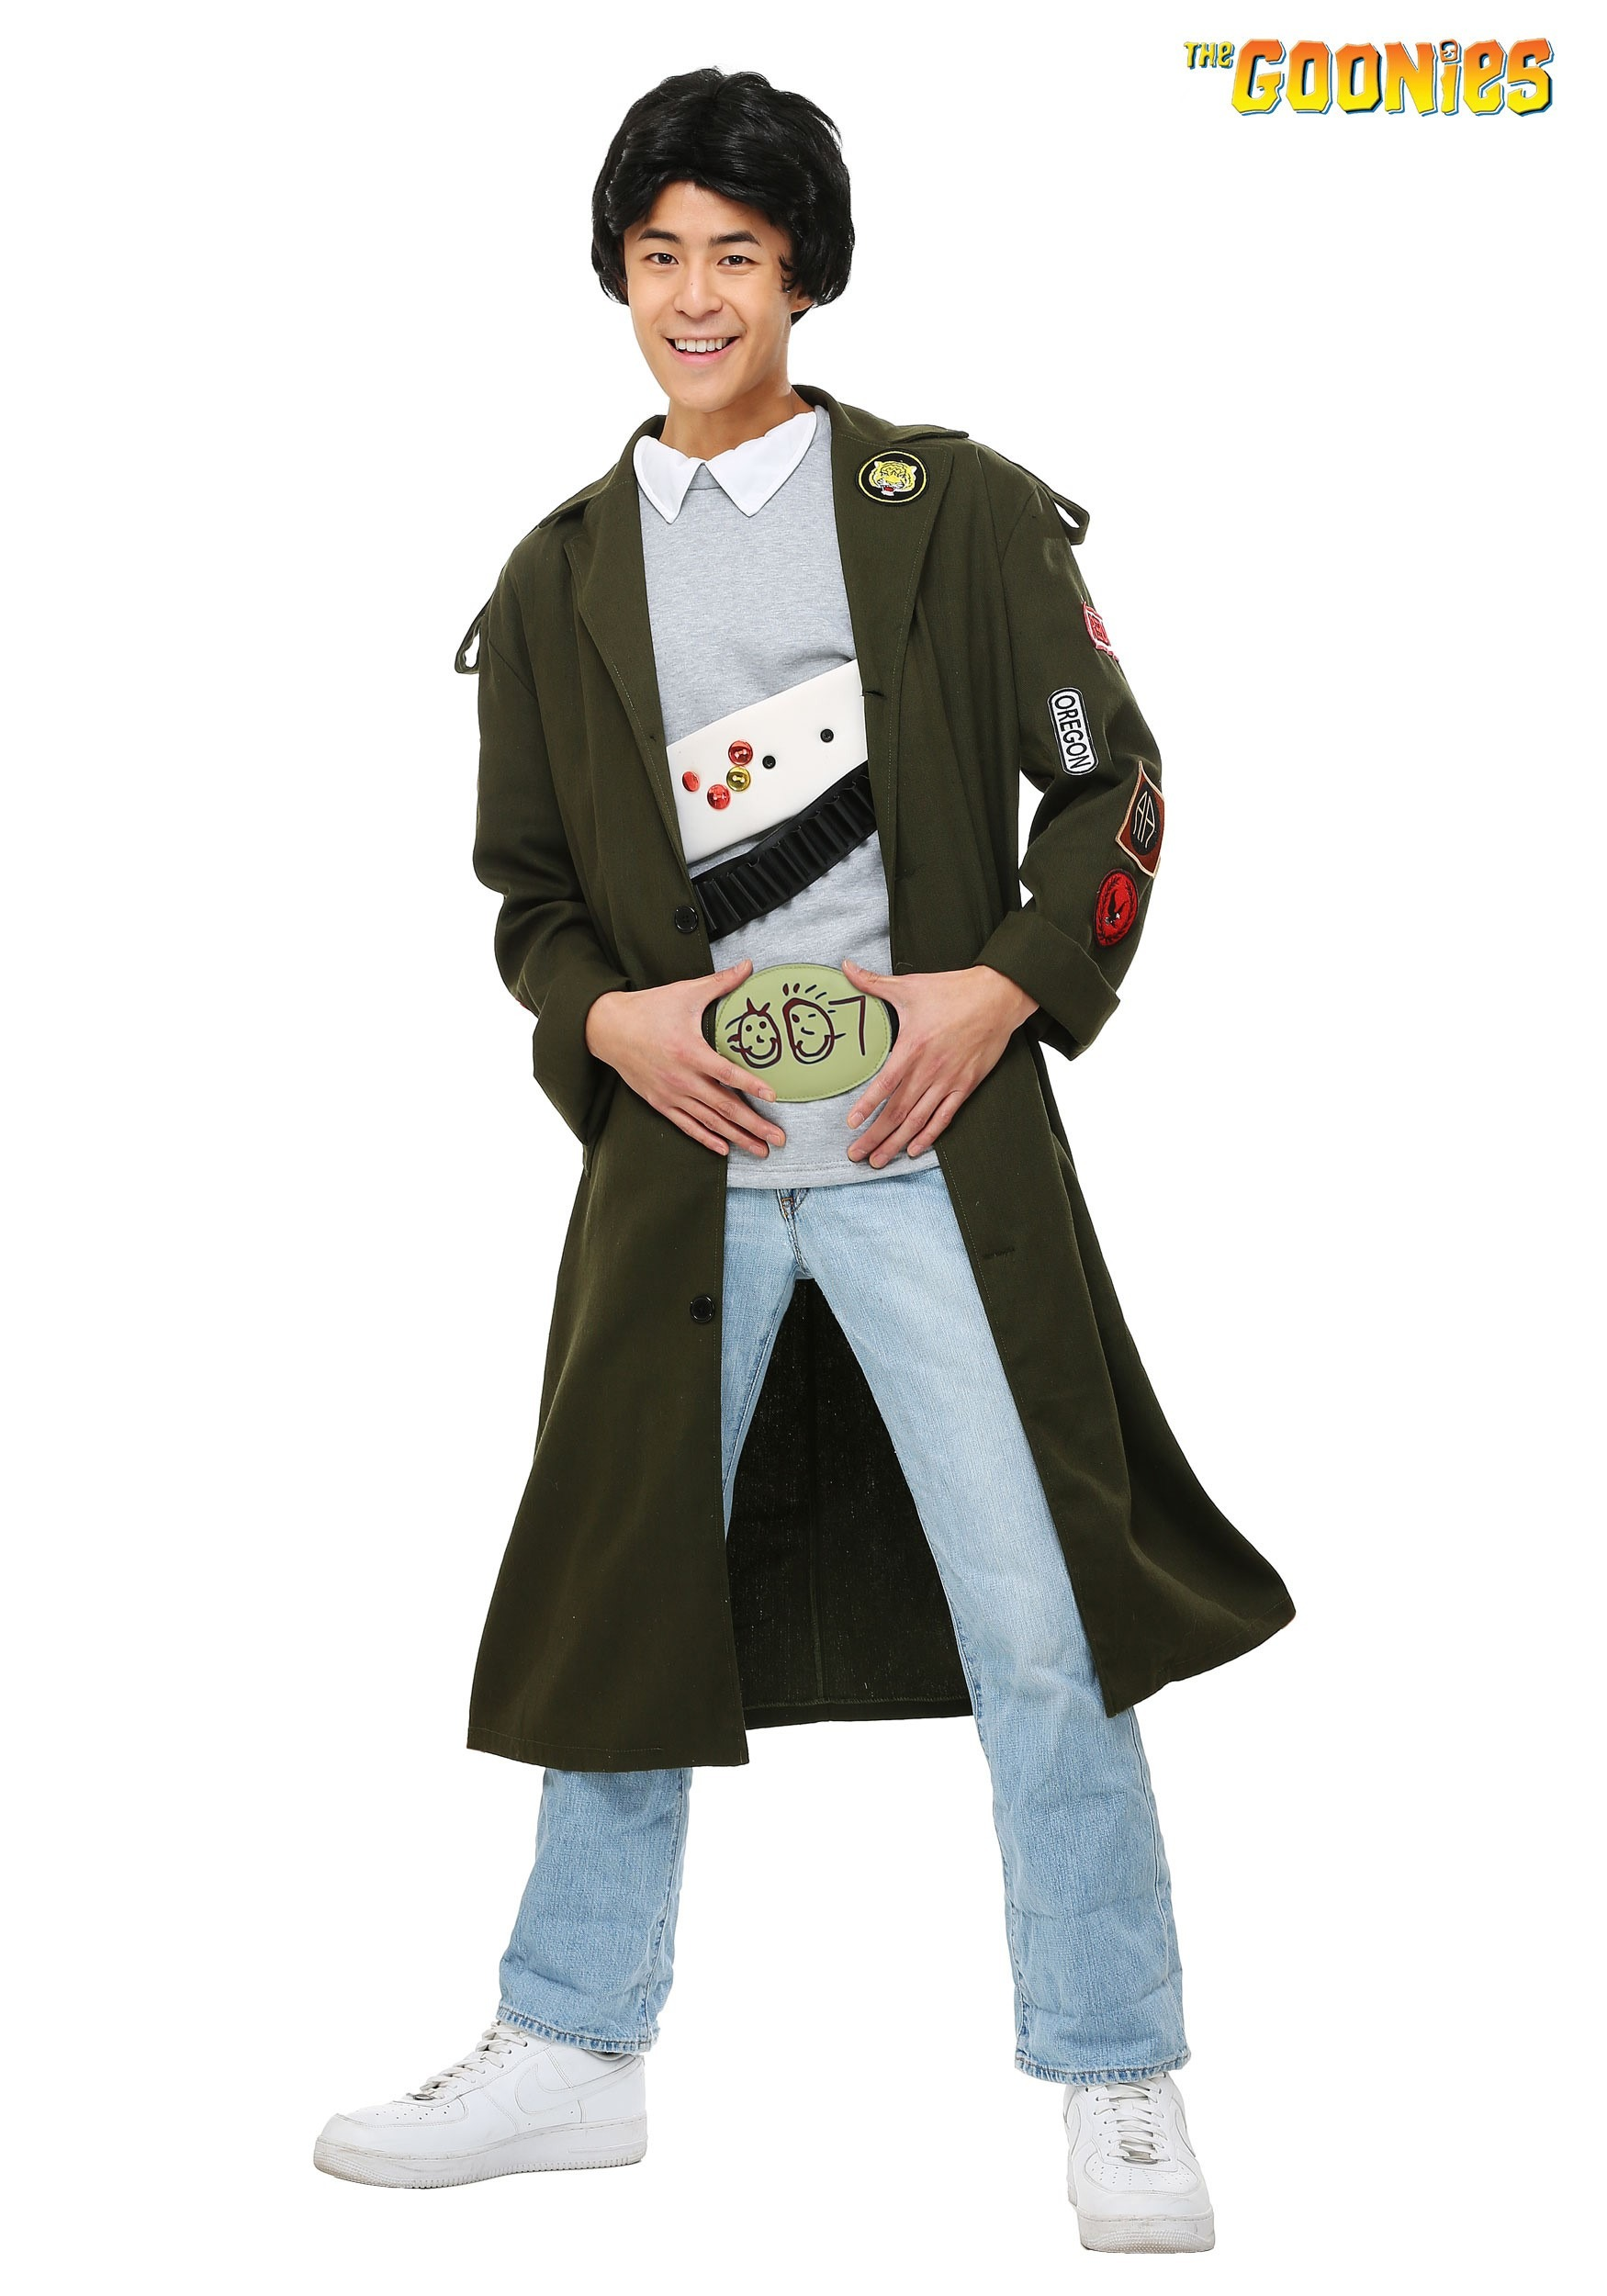 Adult Data Costume from The Goonies